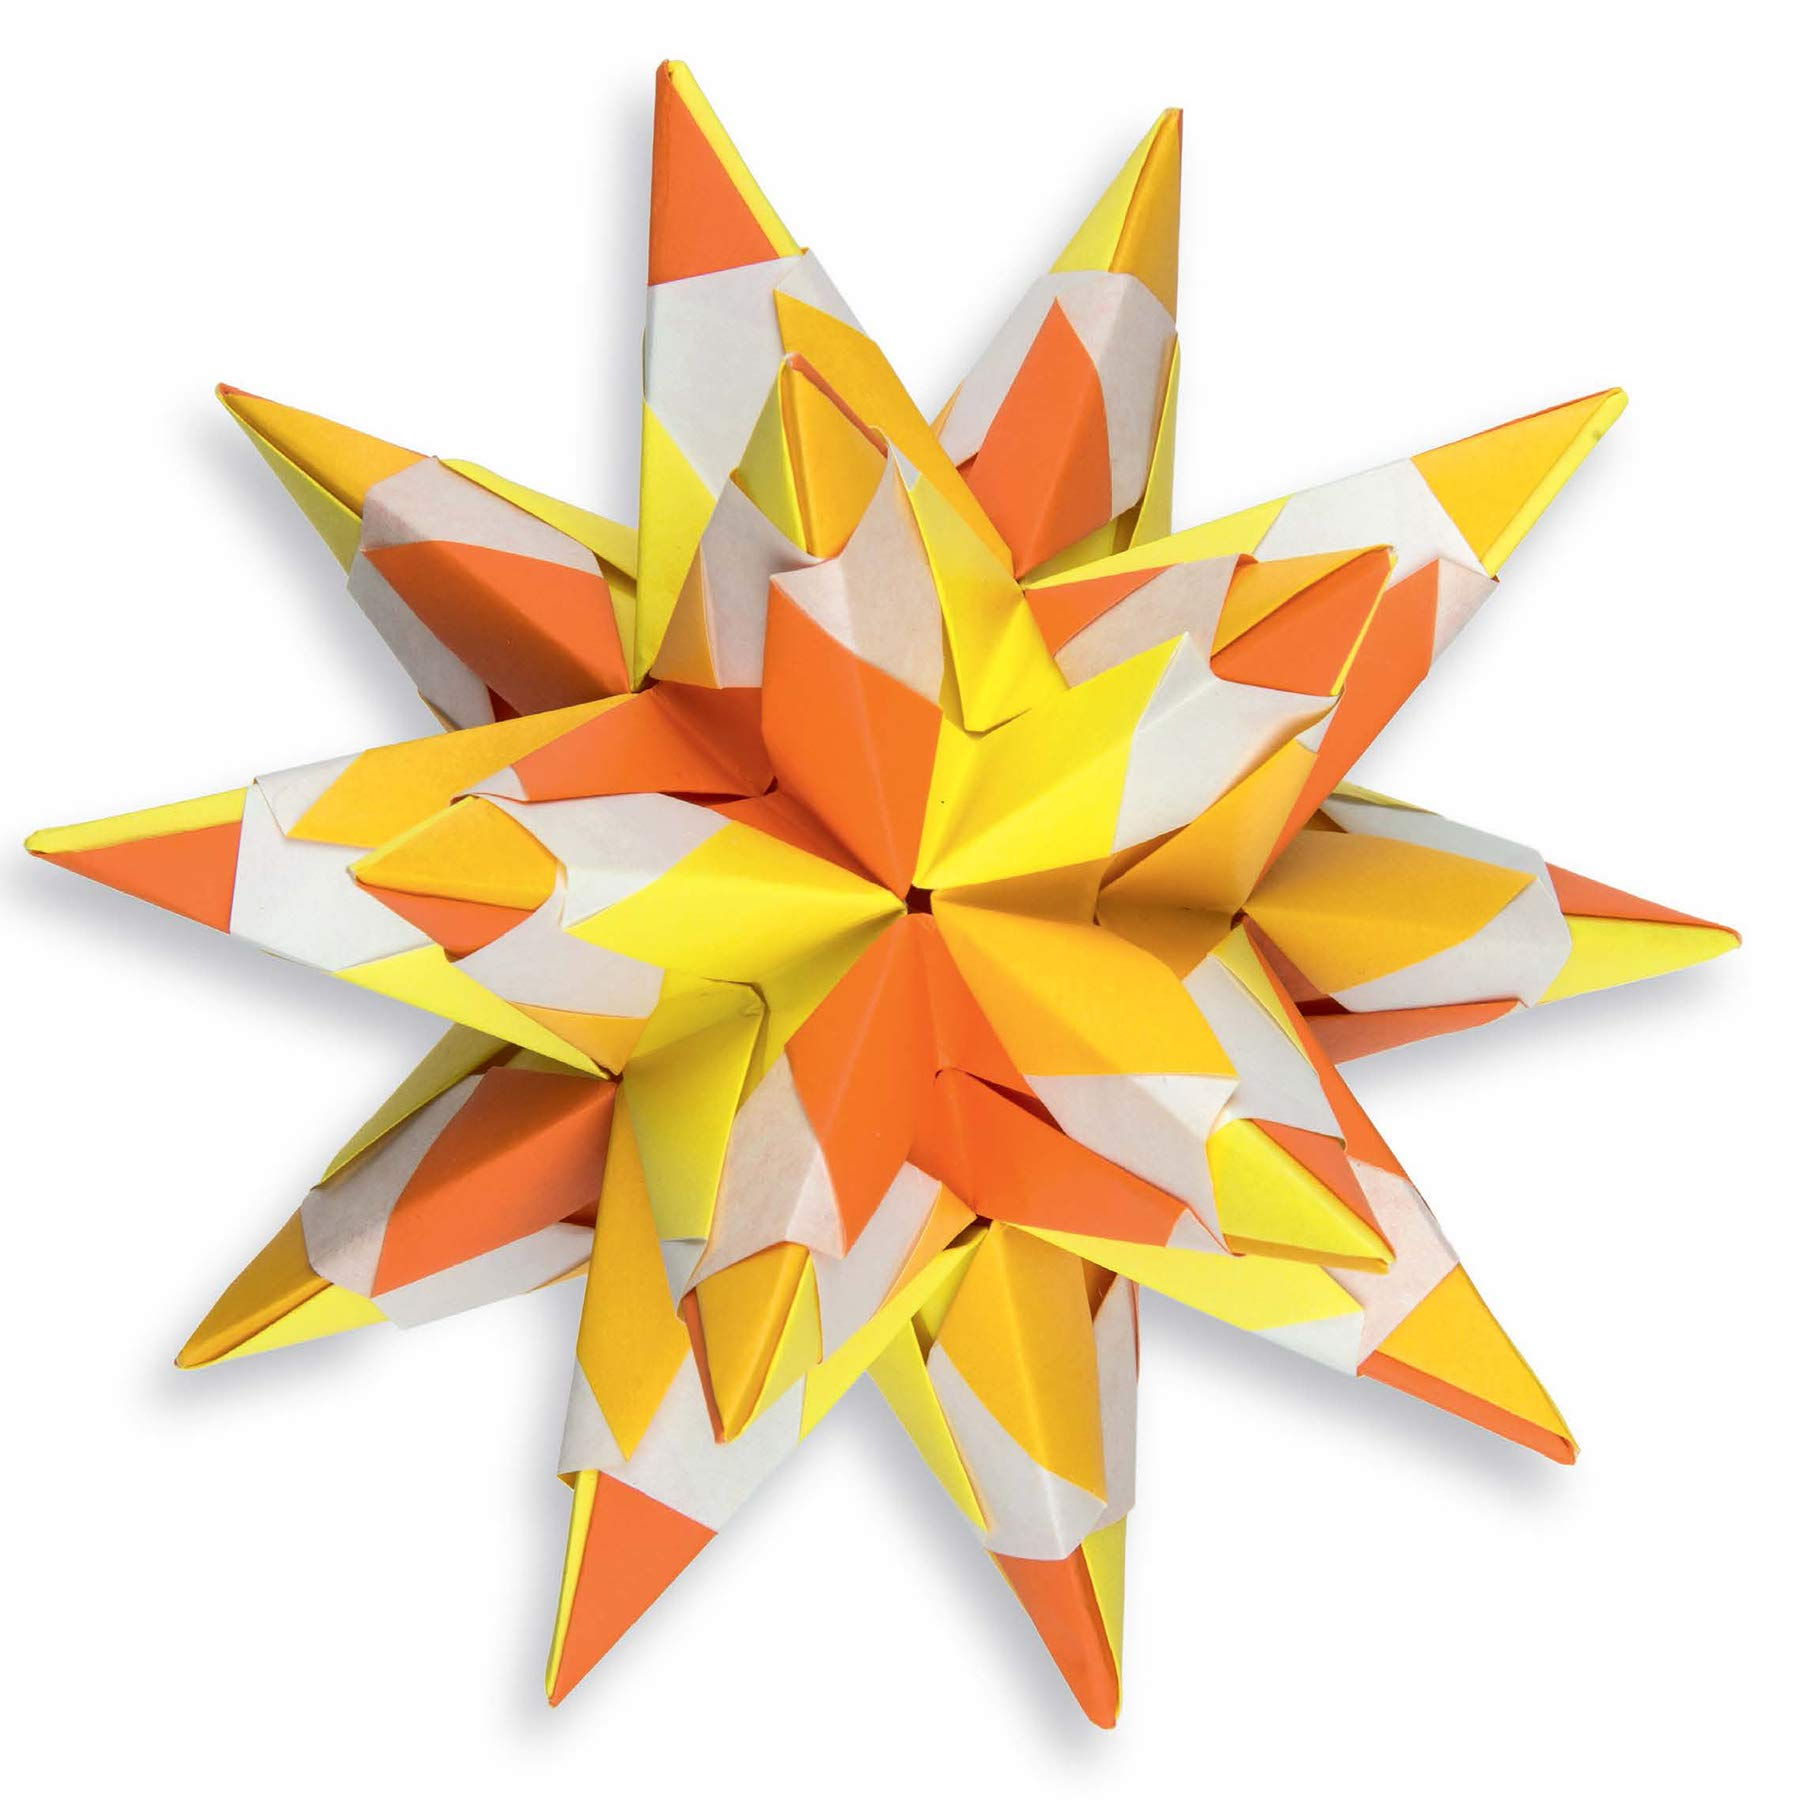 Fabulous Modular Origami: 20 Origami Models with ...